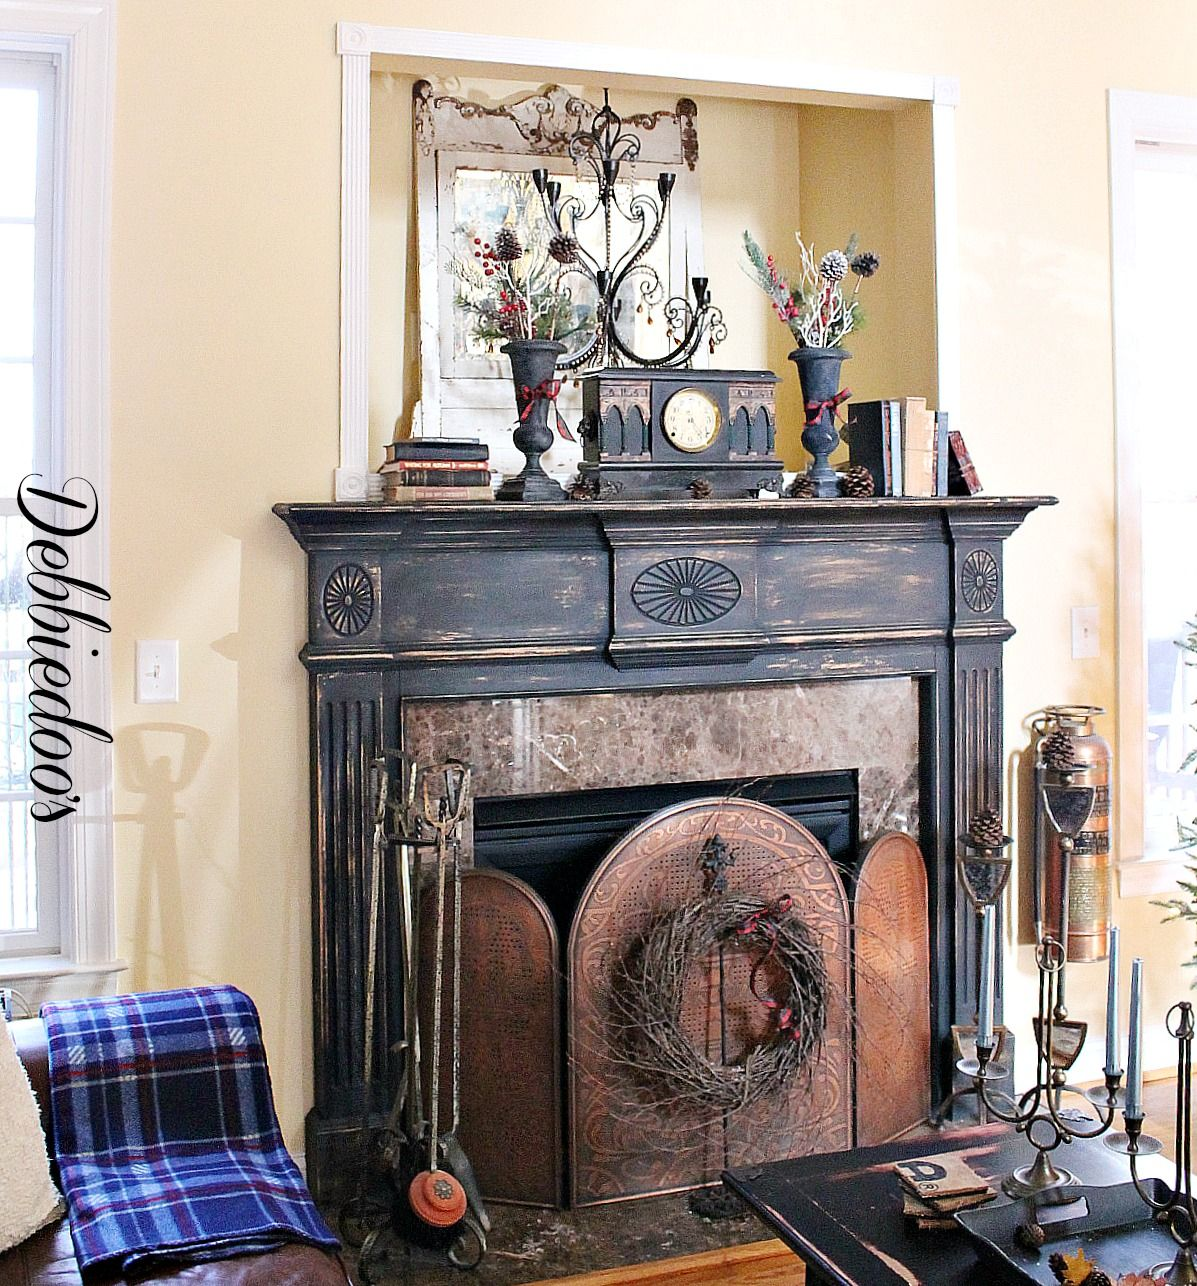 Know Some Stone Fireplace Painting Ideas